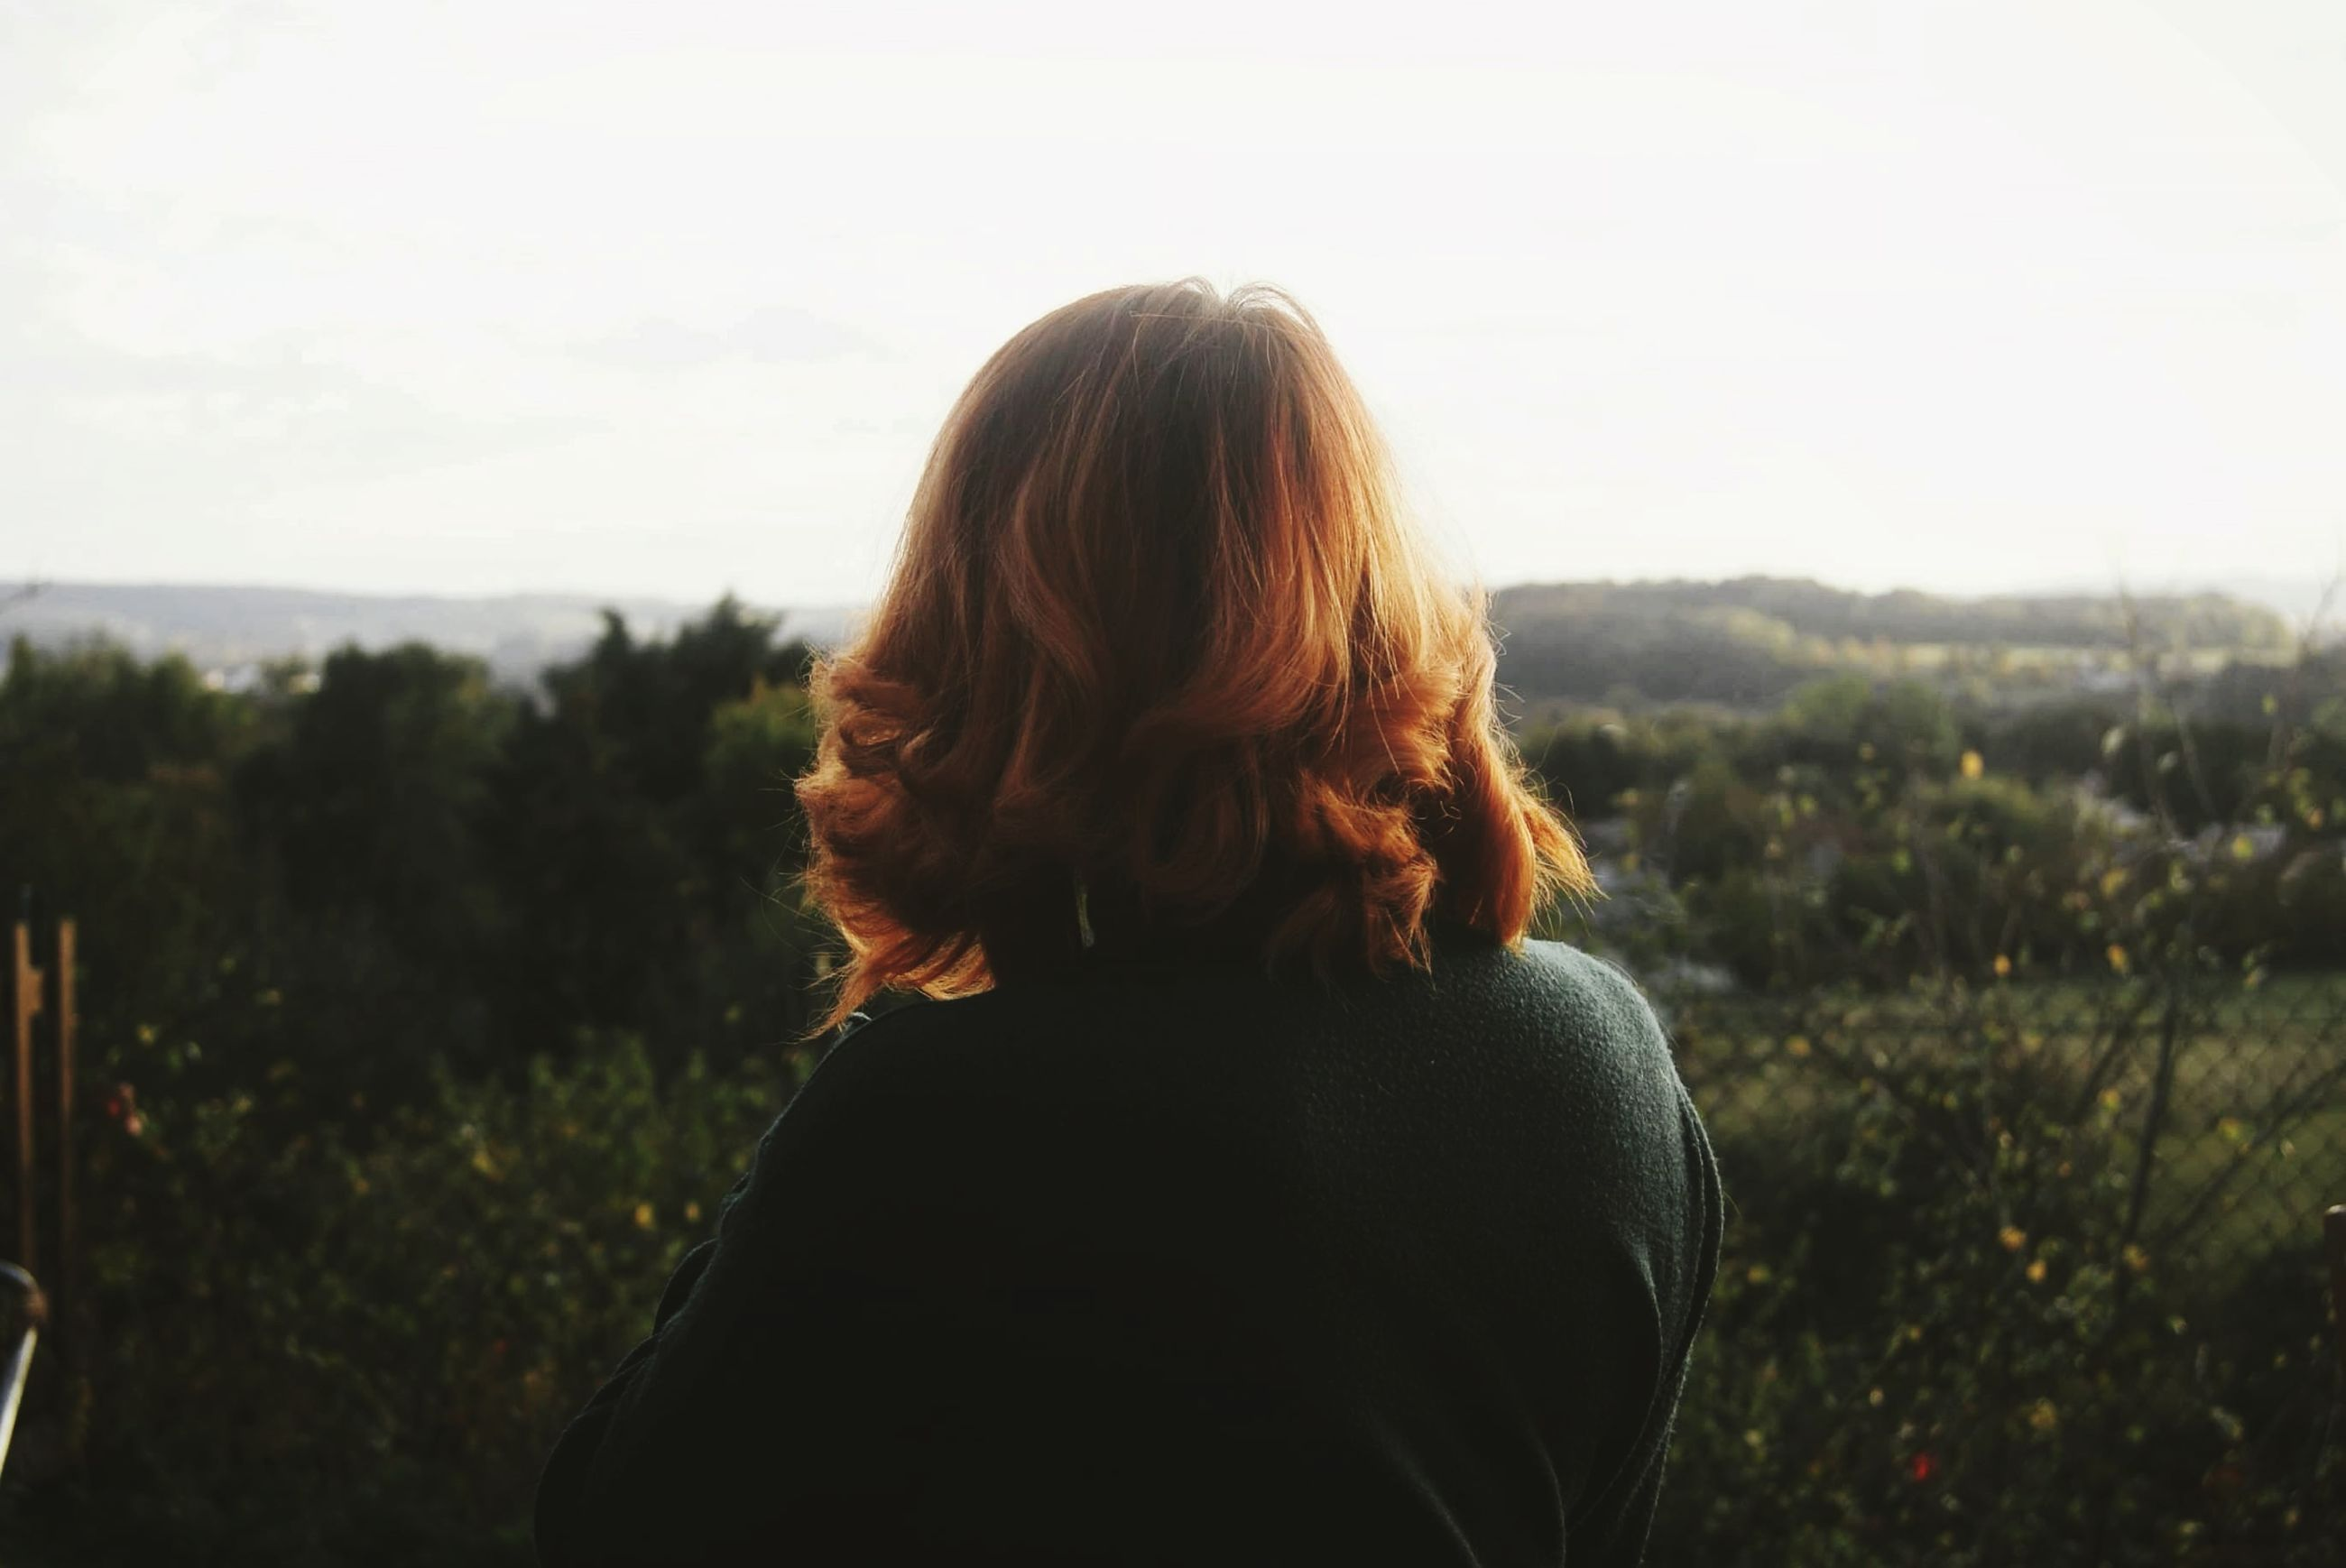 one person, rear view, hair, real people, hairstyle, sky, leisure activity, lifestyles, women, adult, standing, nature, long hair, blond hair, focus on foreground, young adult, beauty in nature, plant, waist up, looking at view, outdoors